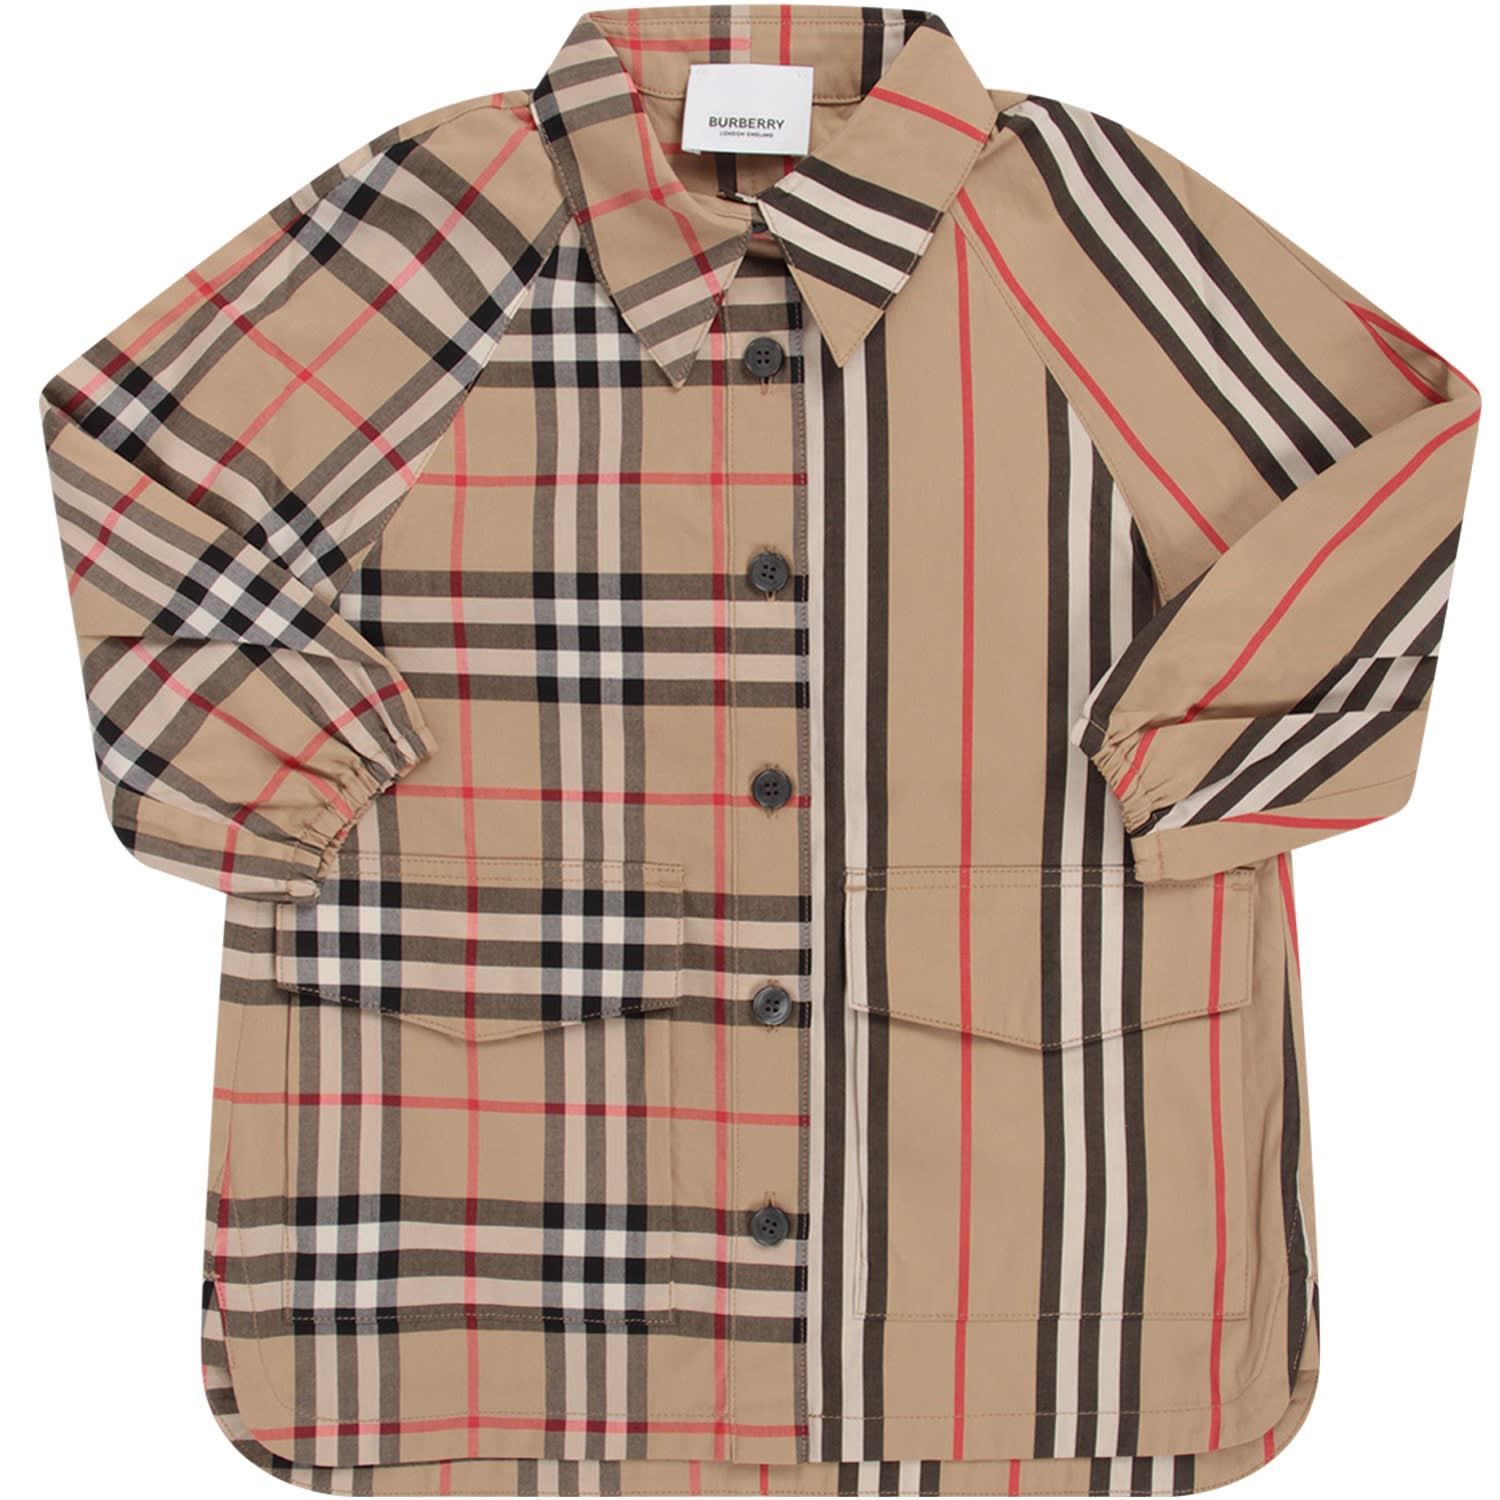 Burberry Biege Babygirl Dress With Iconic Check And Stripe